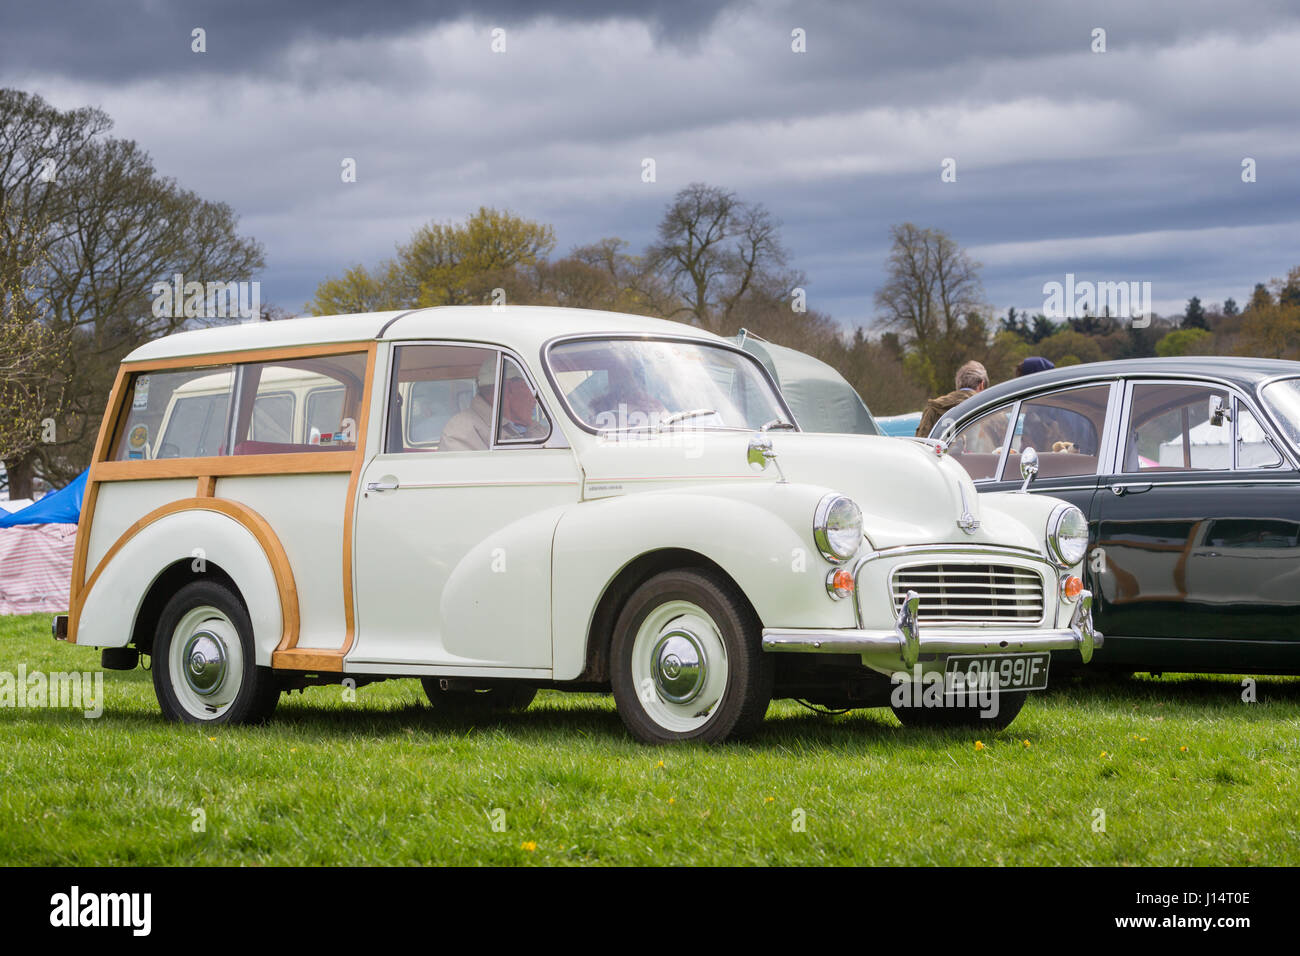 Vintage classic Morris Traveller 1970s white timbered estate - Stock Image